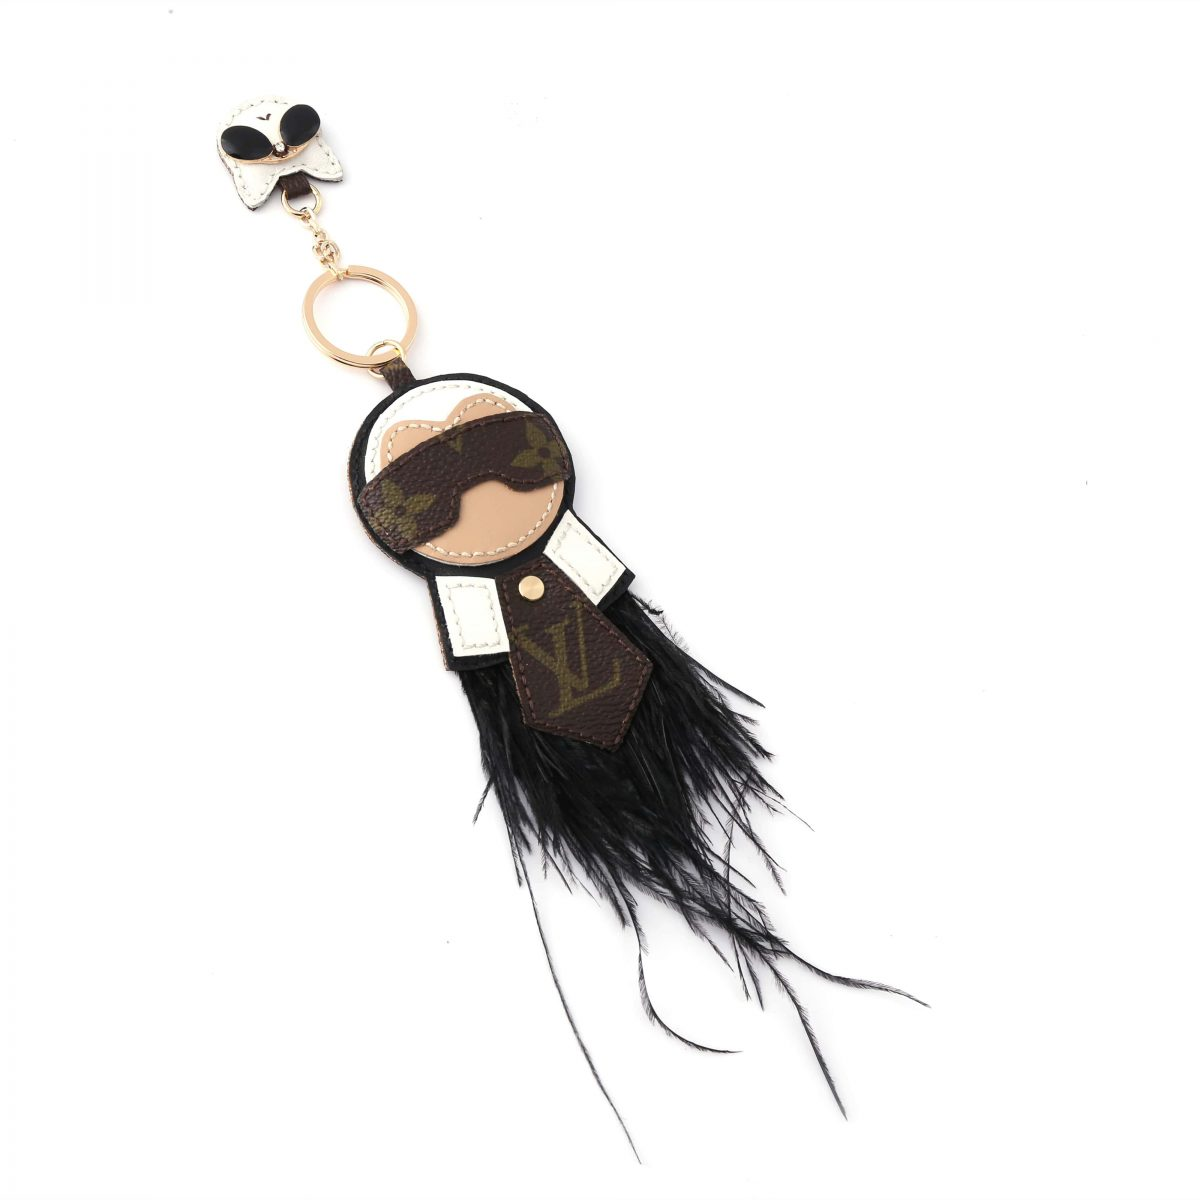 upcycled-karl-lagerfeld-and-his-cat-fashion-keychain-charm